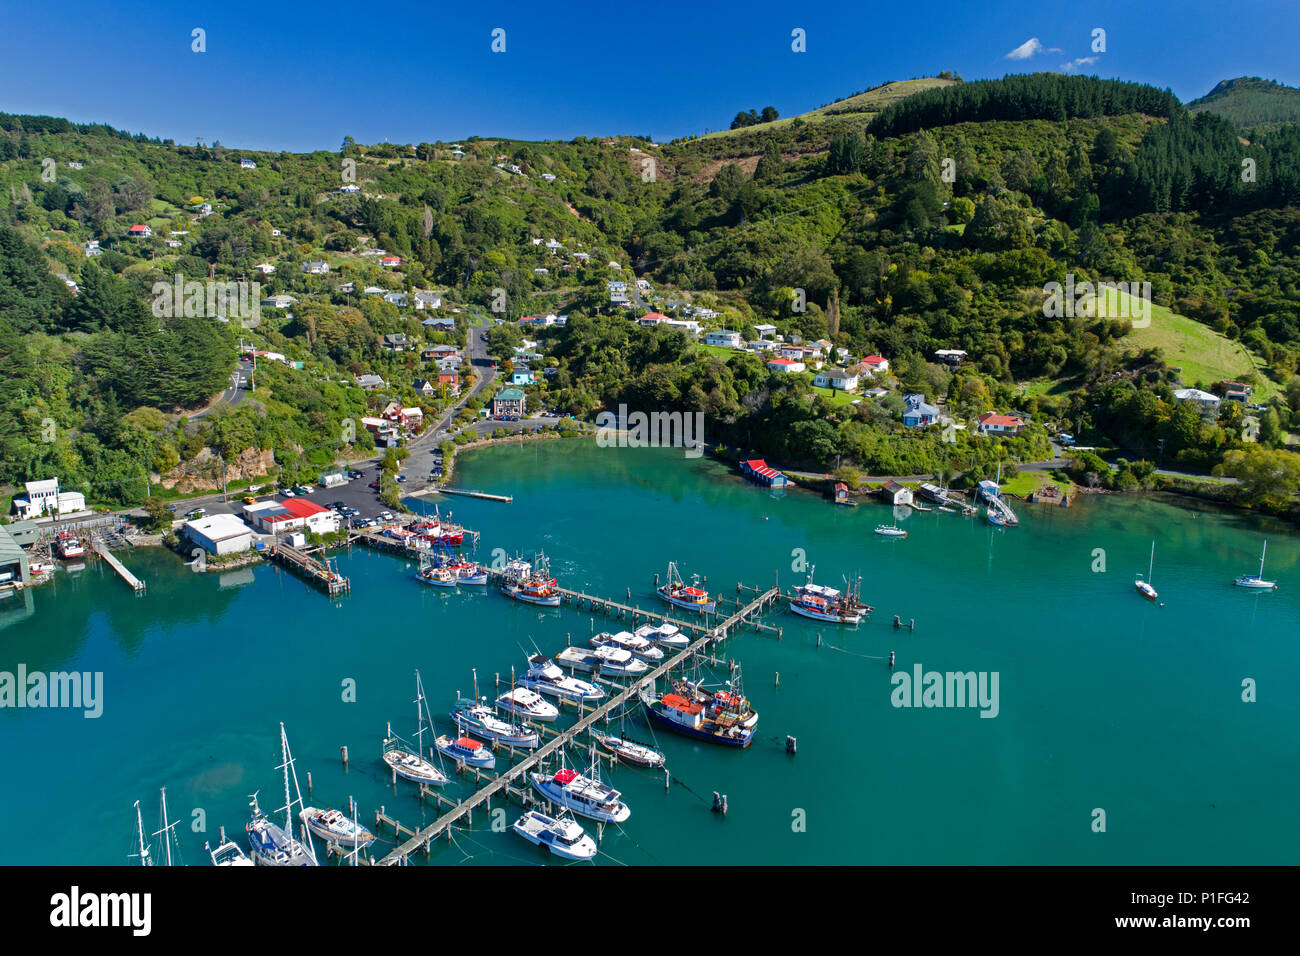 Fishing Boats at Carey's Bay Wharf and Otago Harbour, Port Chalmers, Dunedin, Otago, South Island, New Zealand - drone aerial - Stock Image